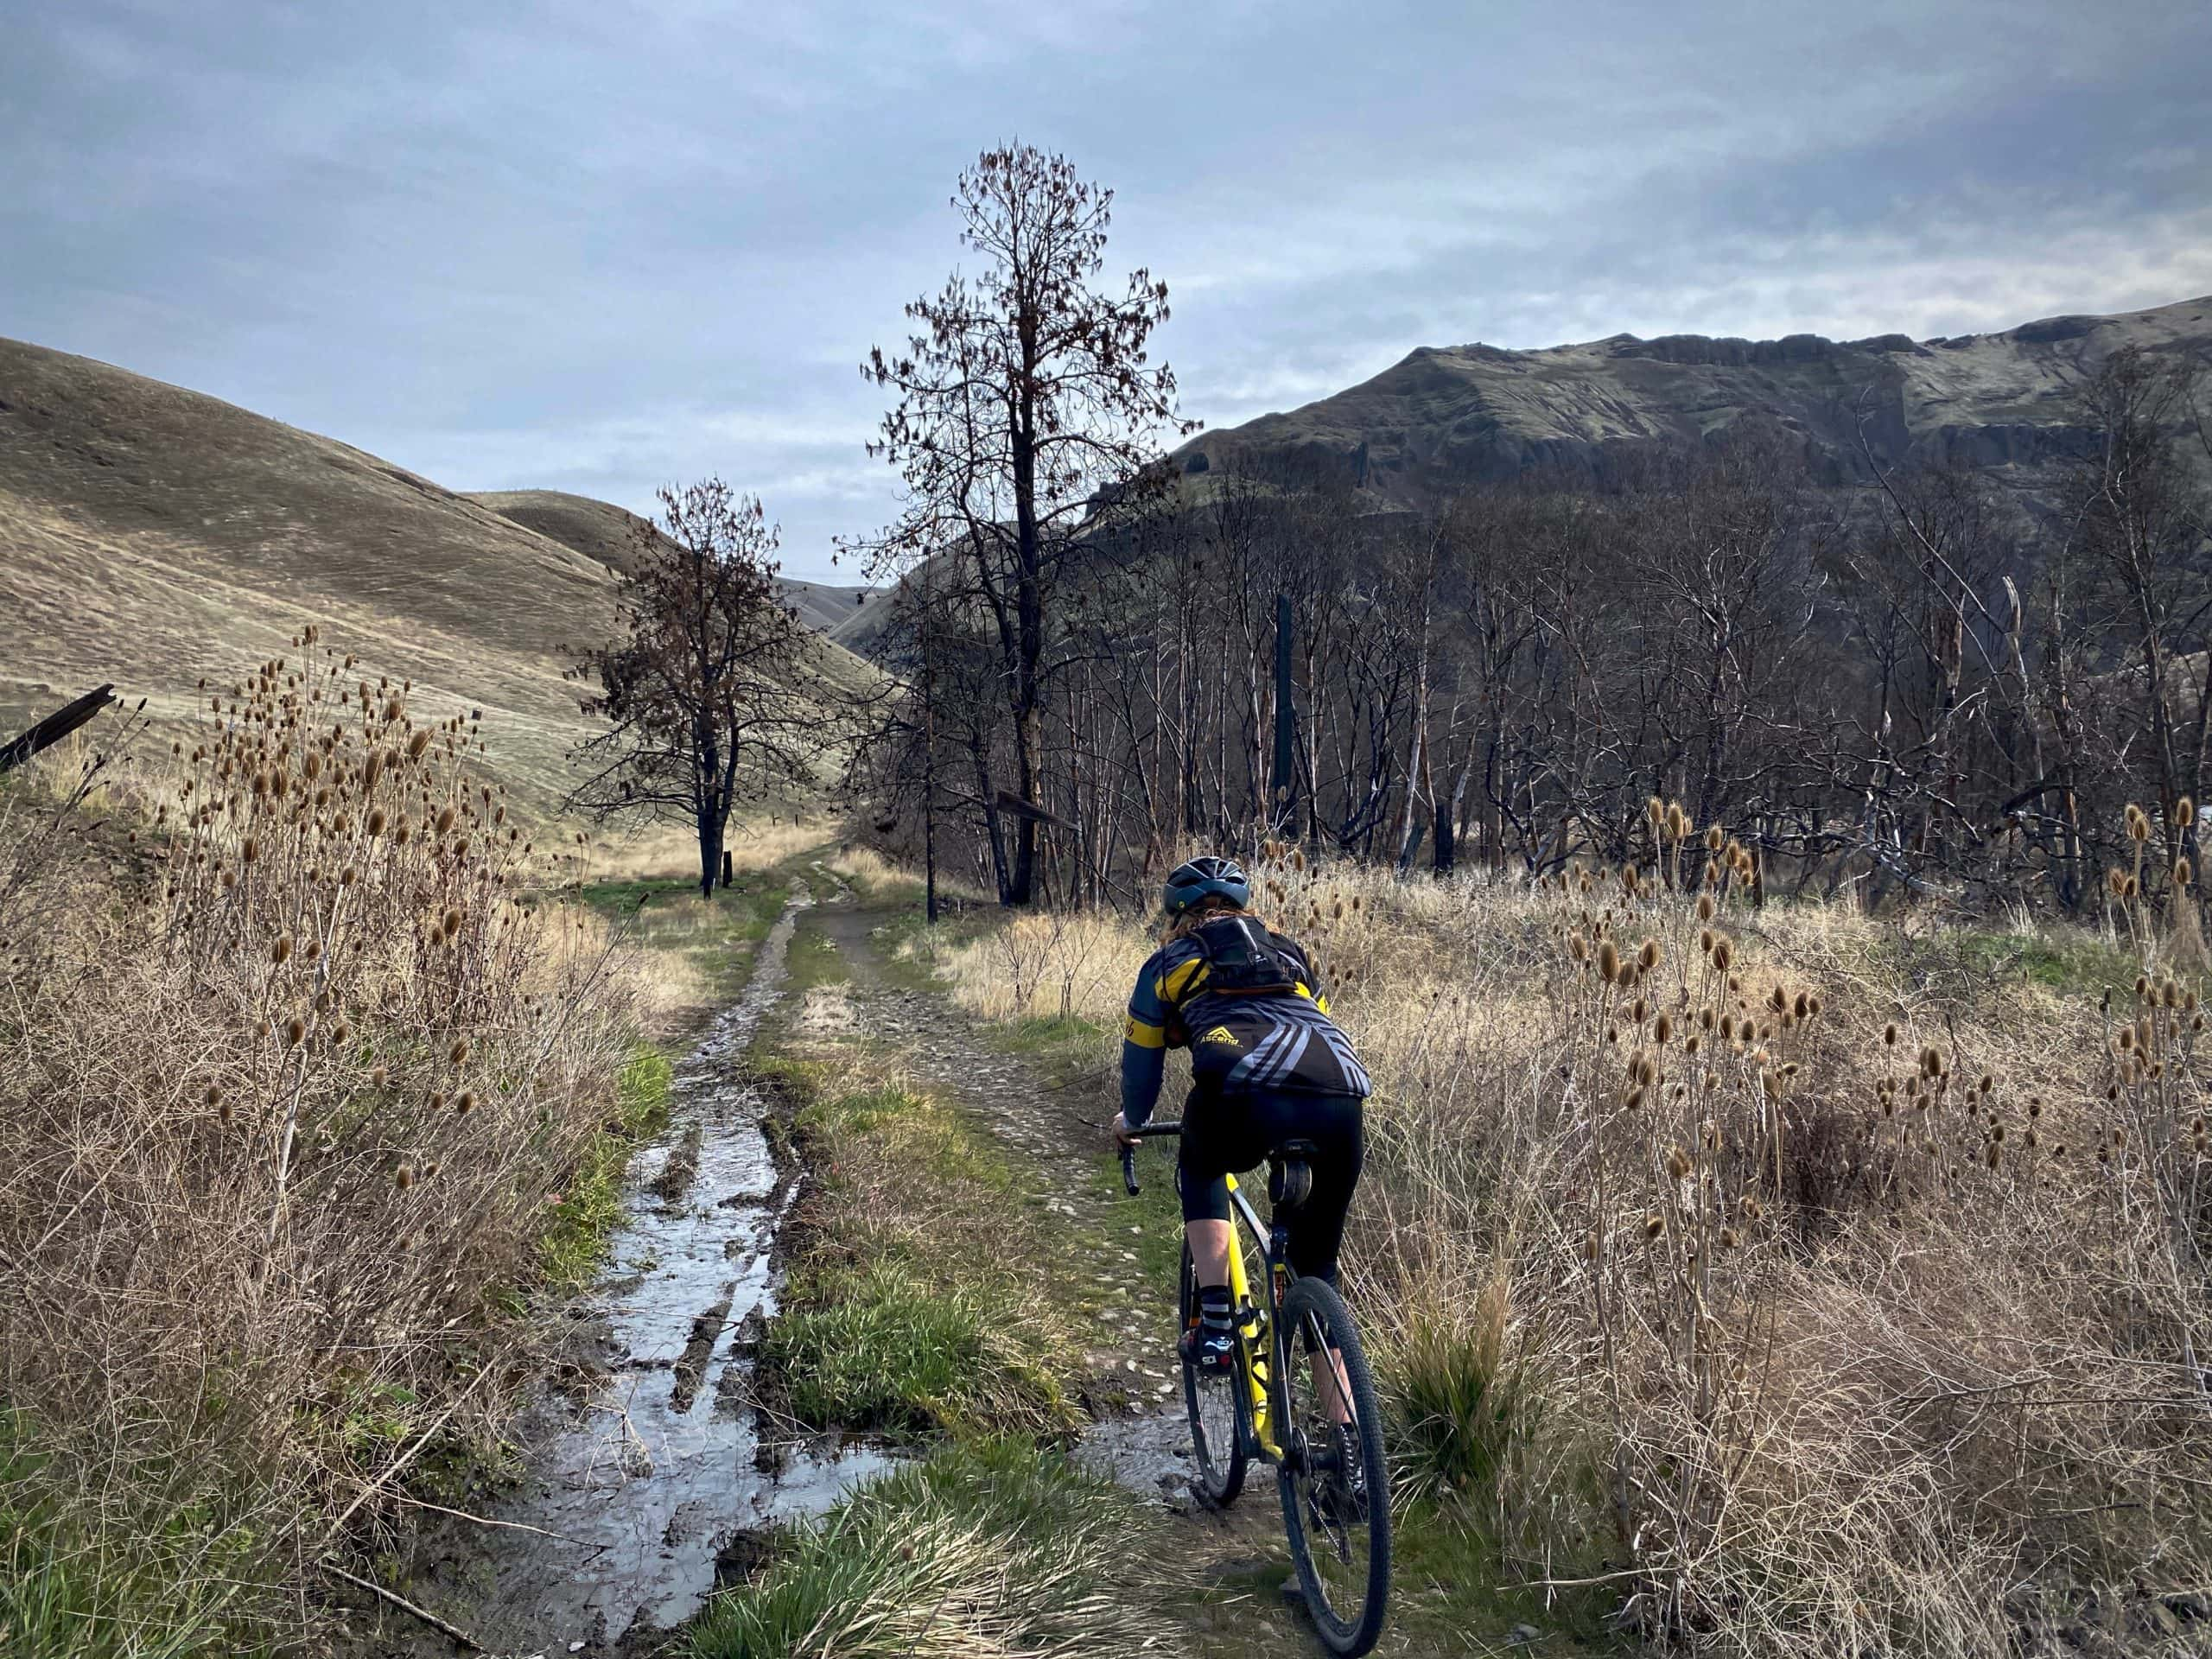 Gravel cyclist on double track trail with standing water near the Harris Ranch on the Deschutes River.